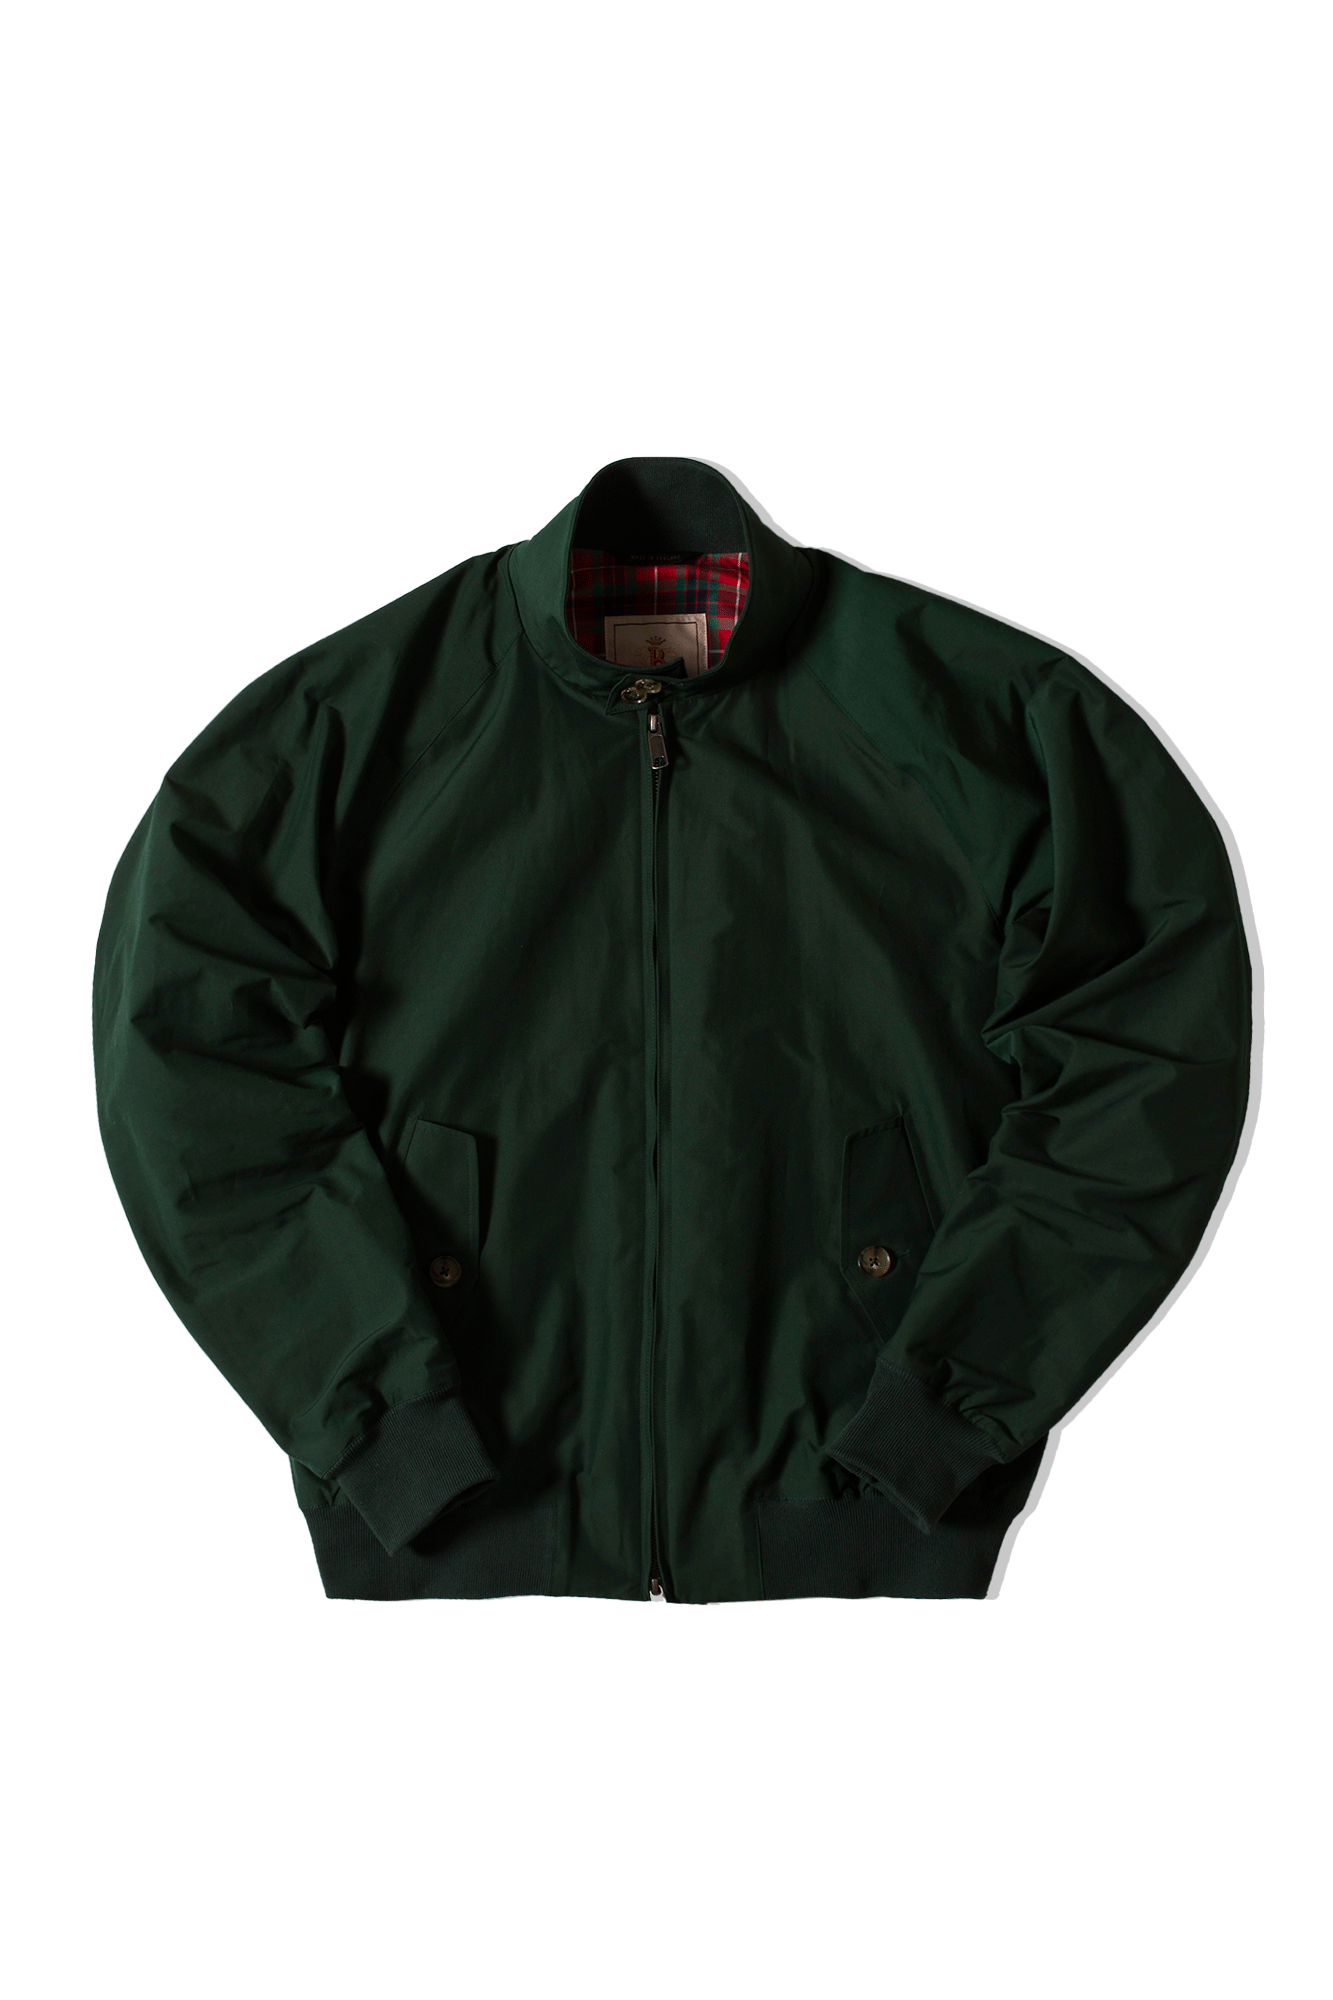 G9 Baracuta Cloth Green